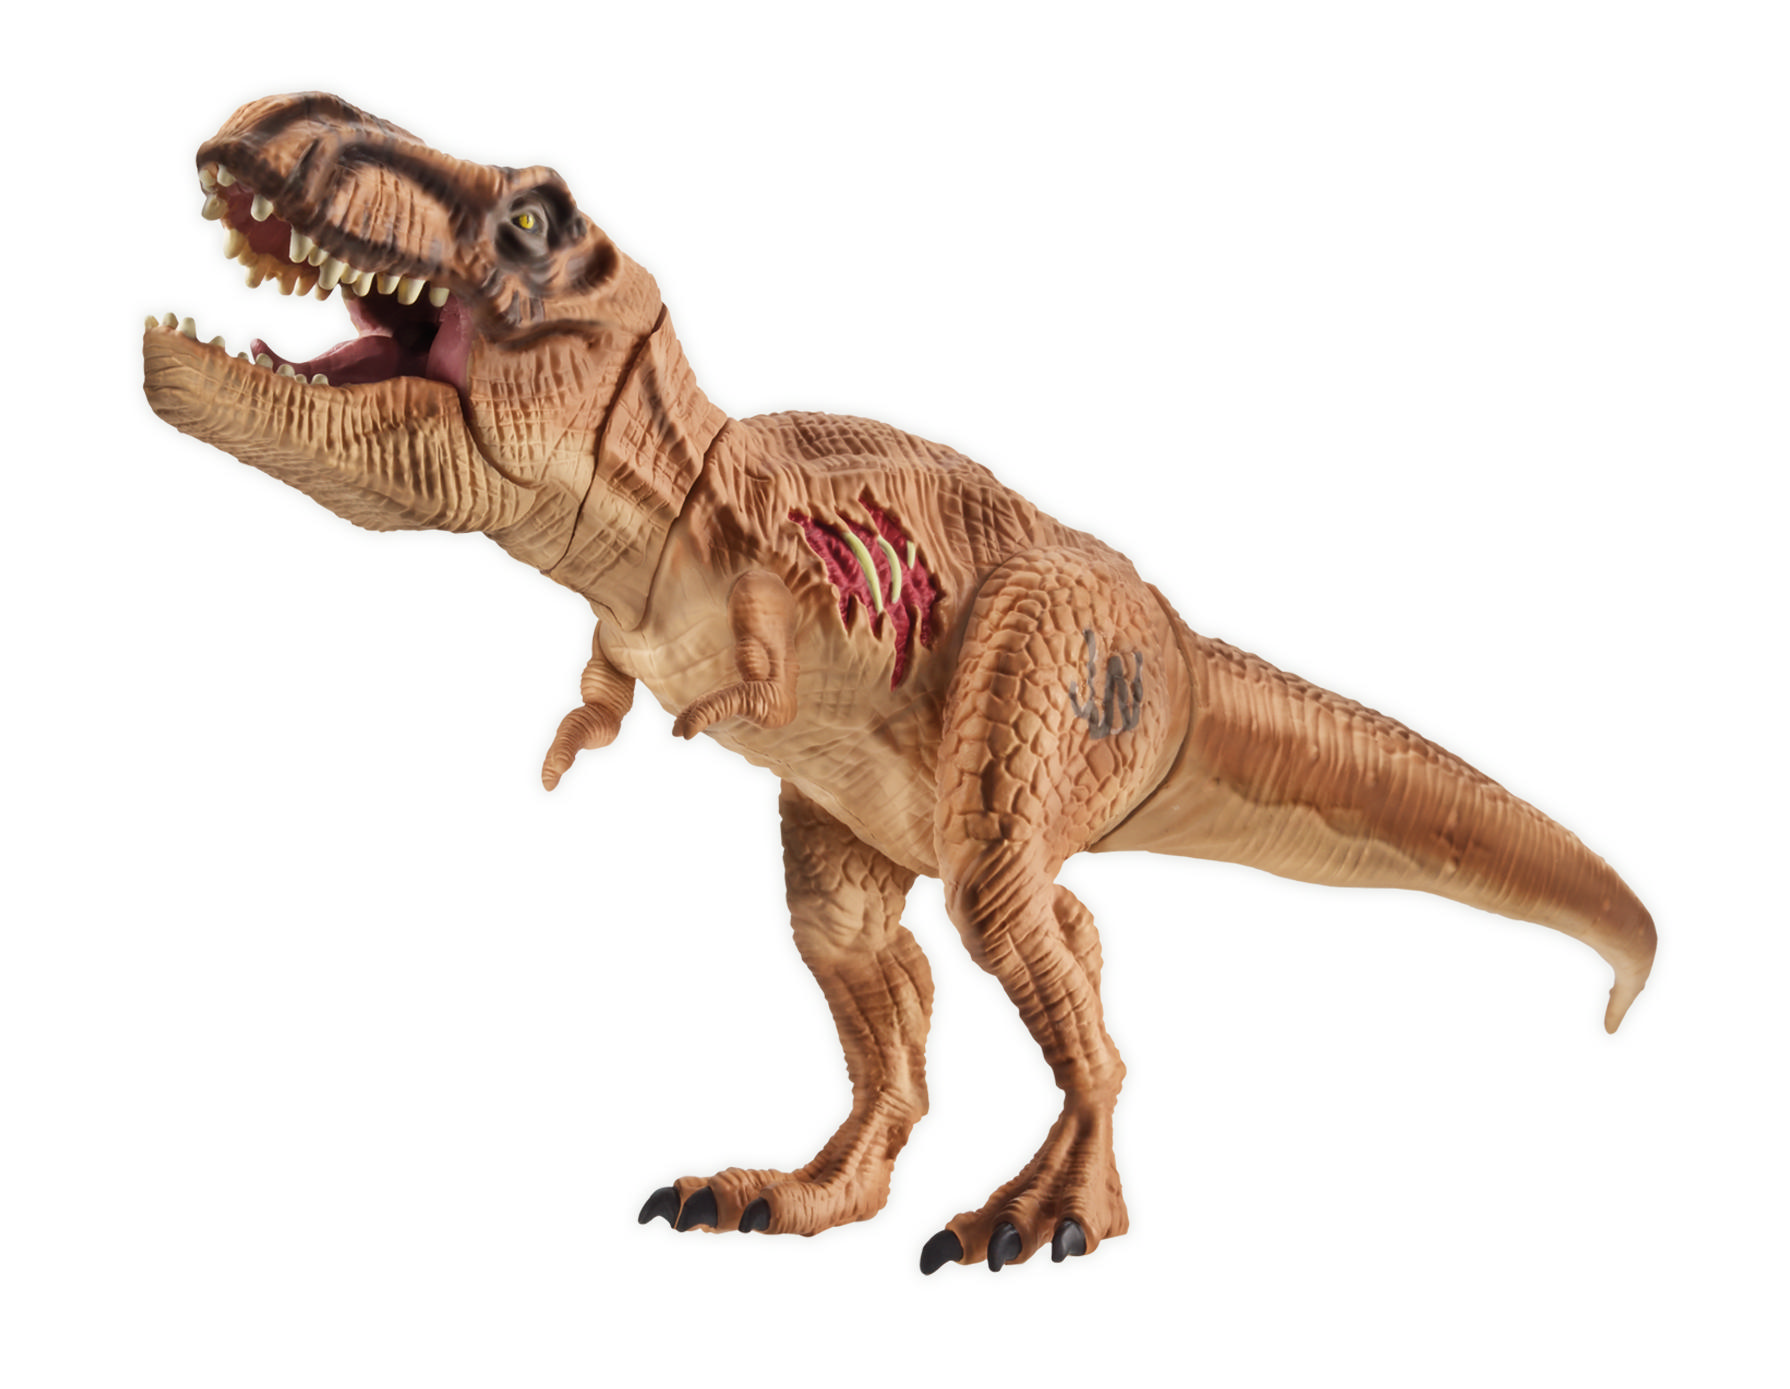 007 Jurassic World Toy Fair Nyc Hasbro Loose Boxed Images Needless Essentials Onlineneedless